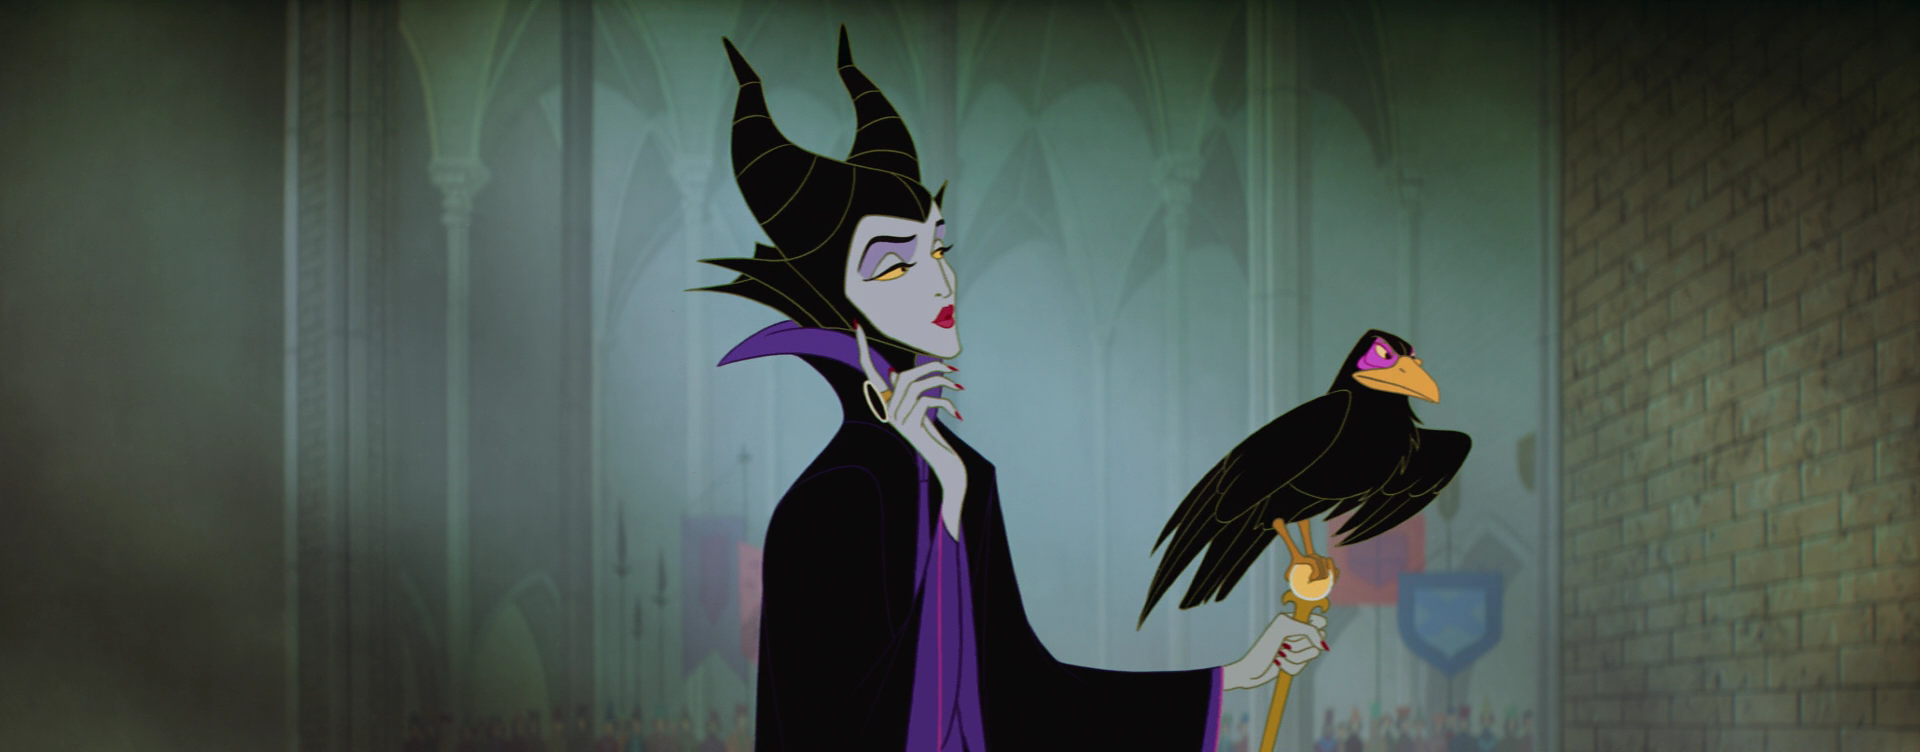 maleficent-classic-cartoon